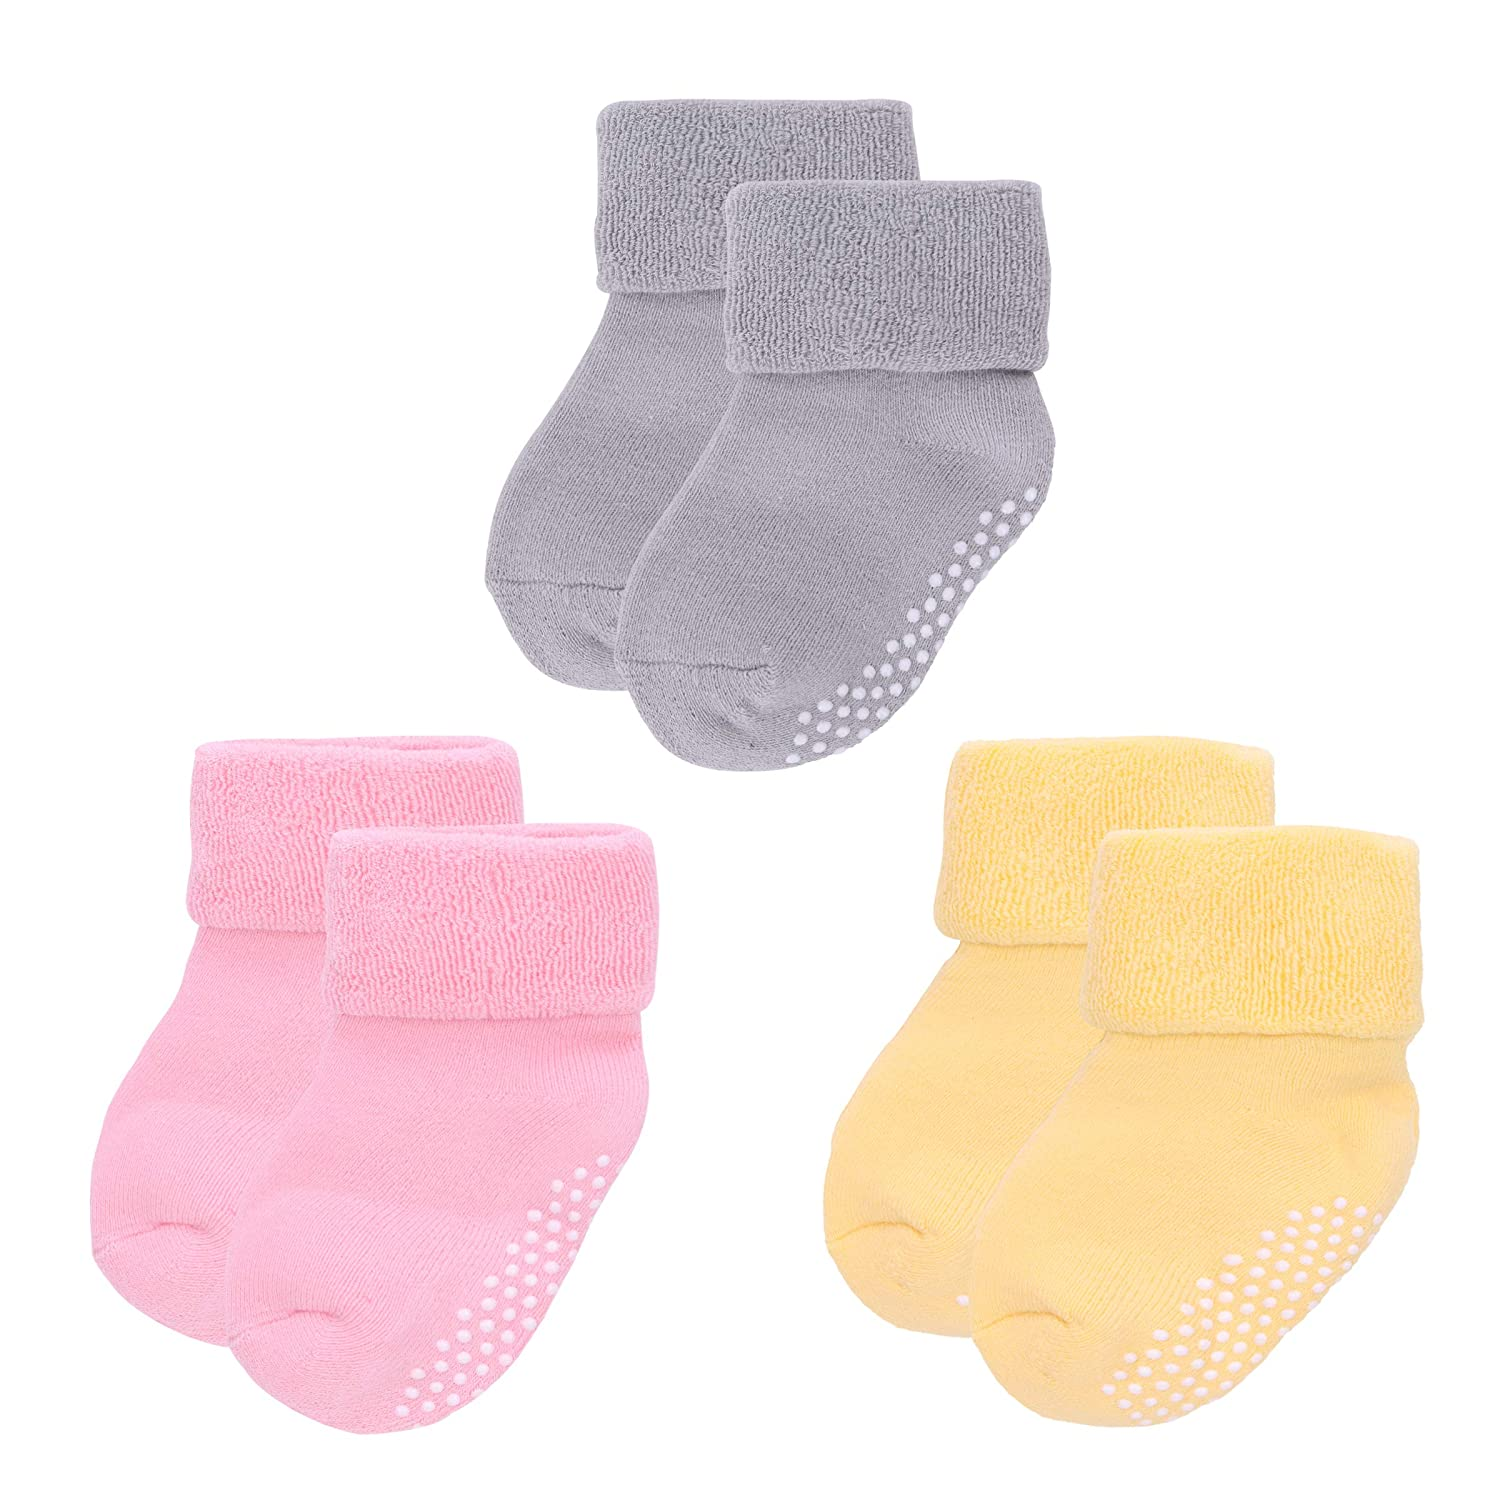 3 Pack Baby Non Slip Socks Winter 0-3 years Toddler Boys Girls Thick Warm Socks Home Breathable Comfortable